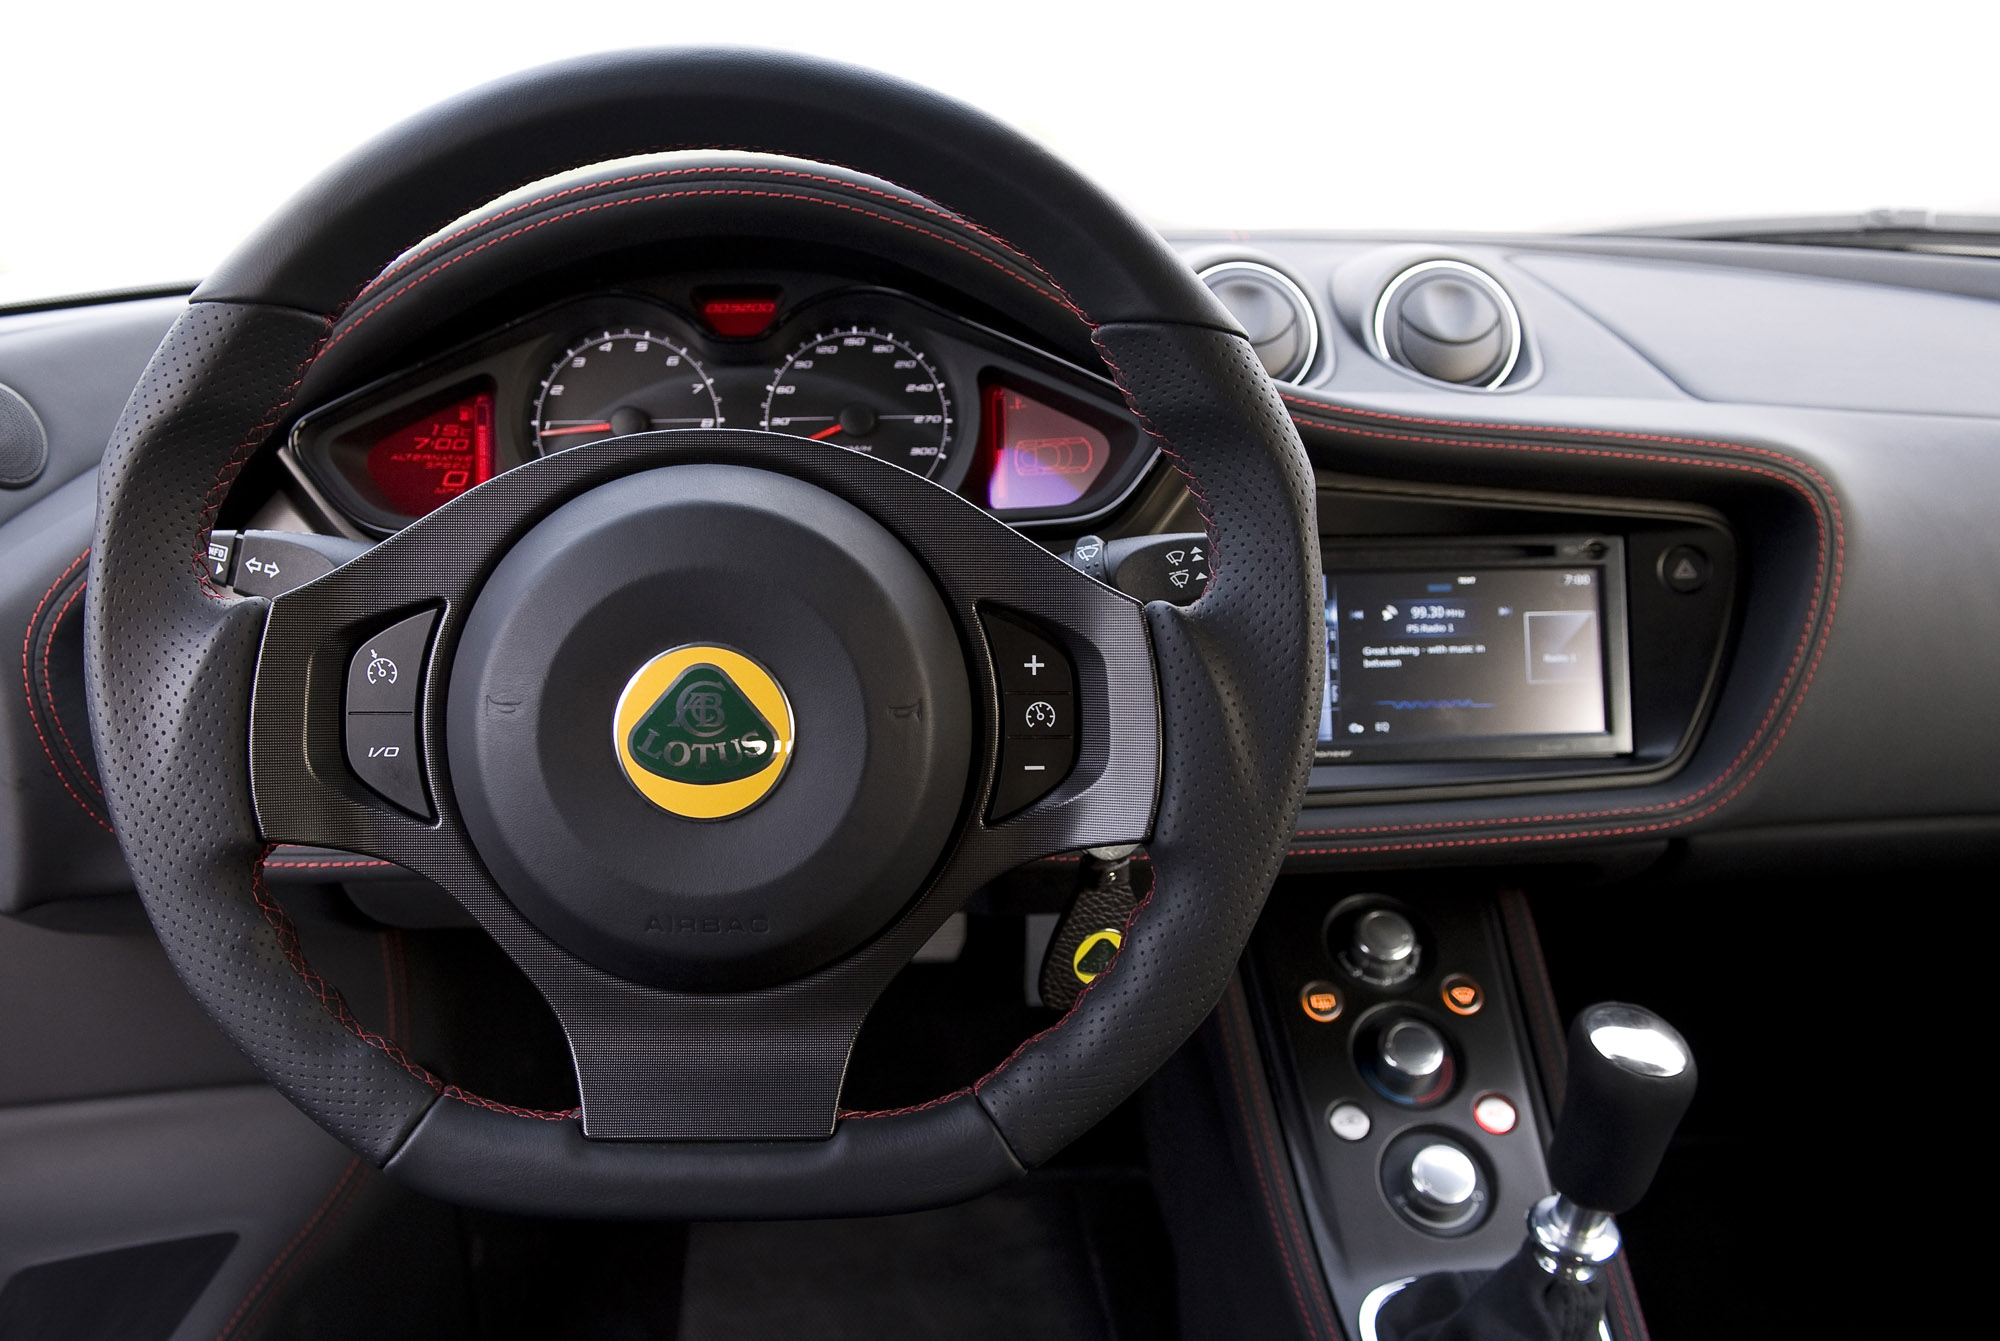 V8 esprit replacement steering wheel lotustalk the lotus cars v8 esprit replacement steering wheel lotustalk the lotus cars community vanachro Image collections